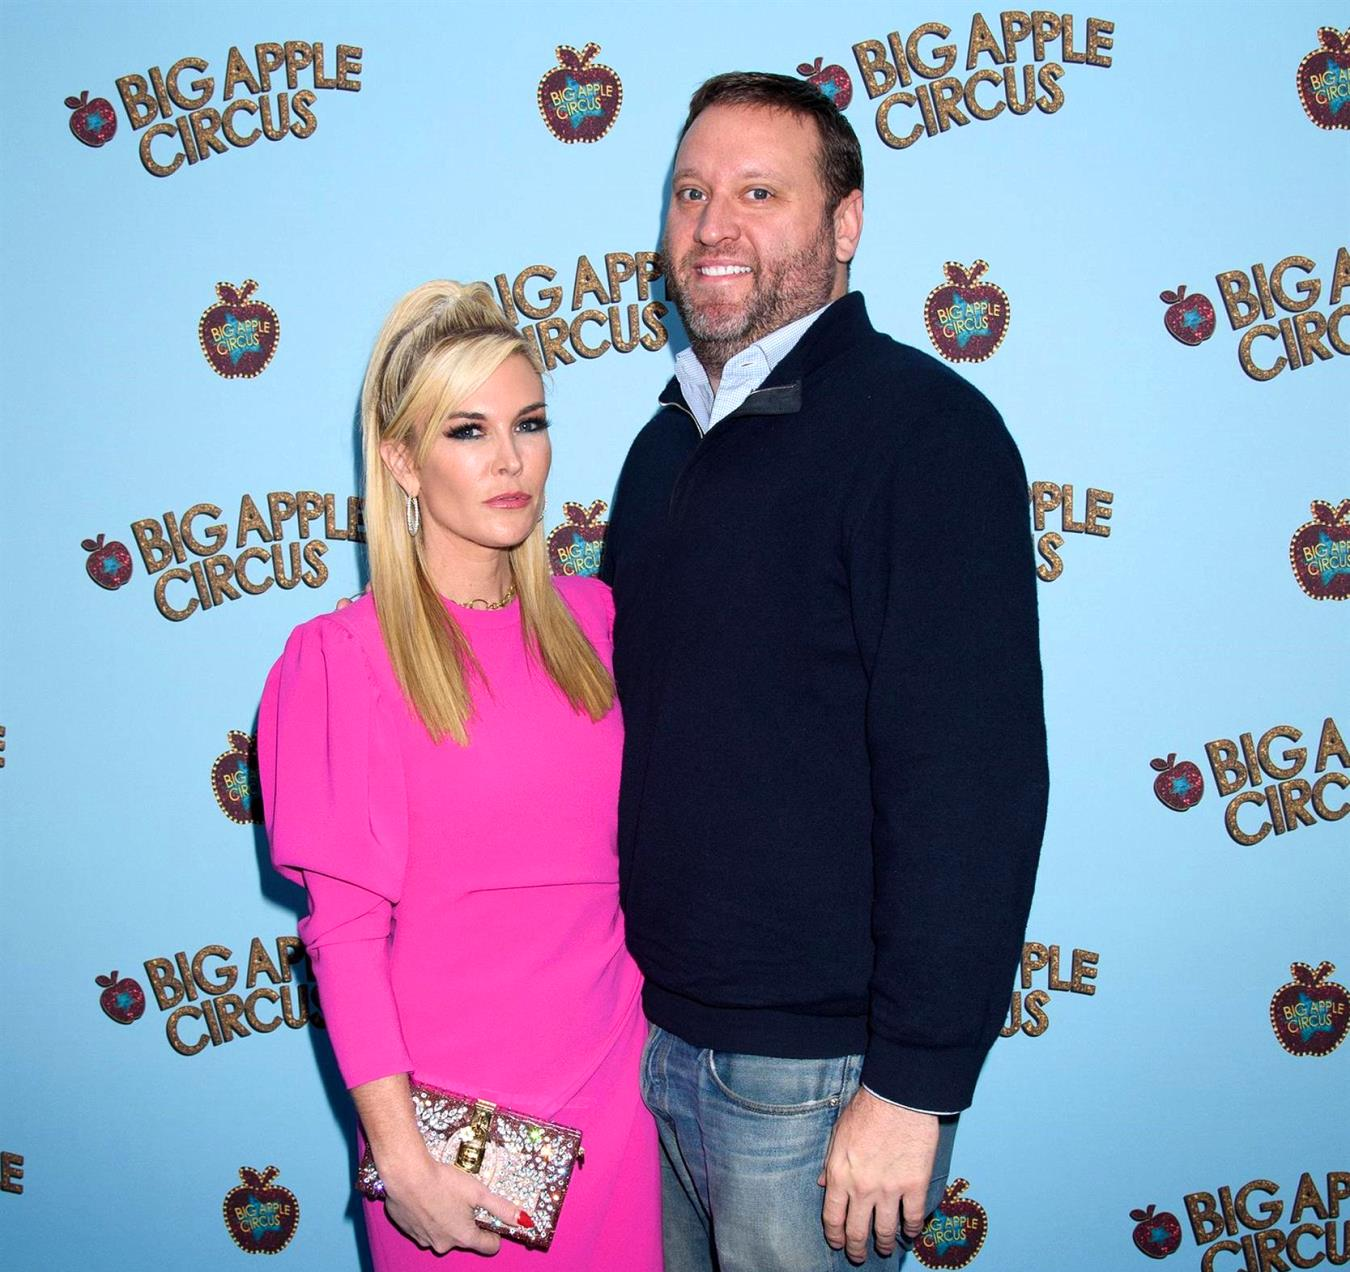 RHONY Star Tinsley Mortimer is Engaged to Scott Kluth! See VIDEO of the Proposal and Get All the Details